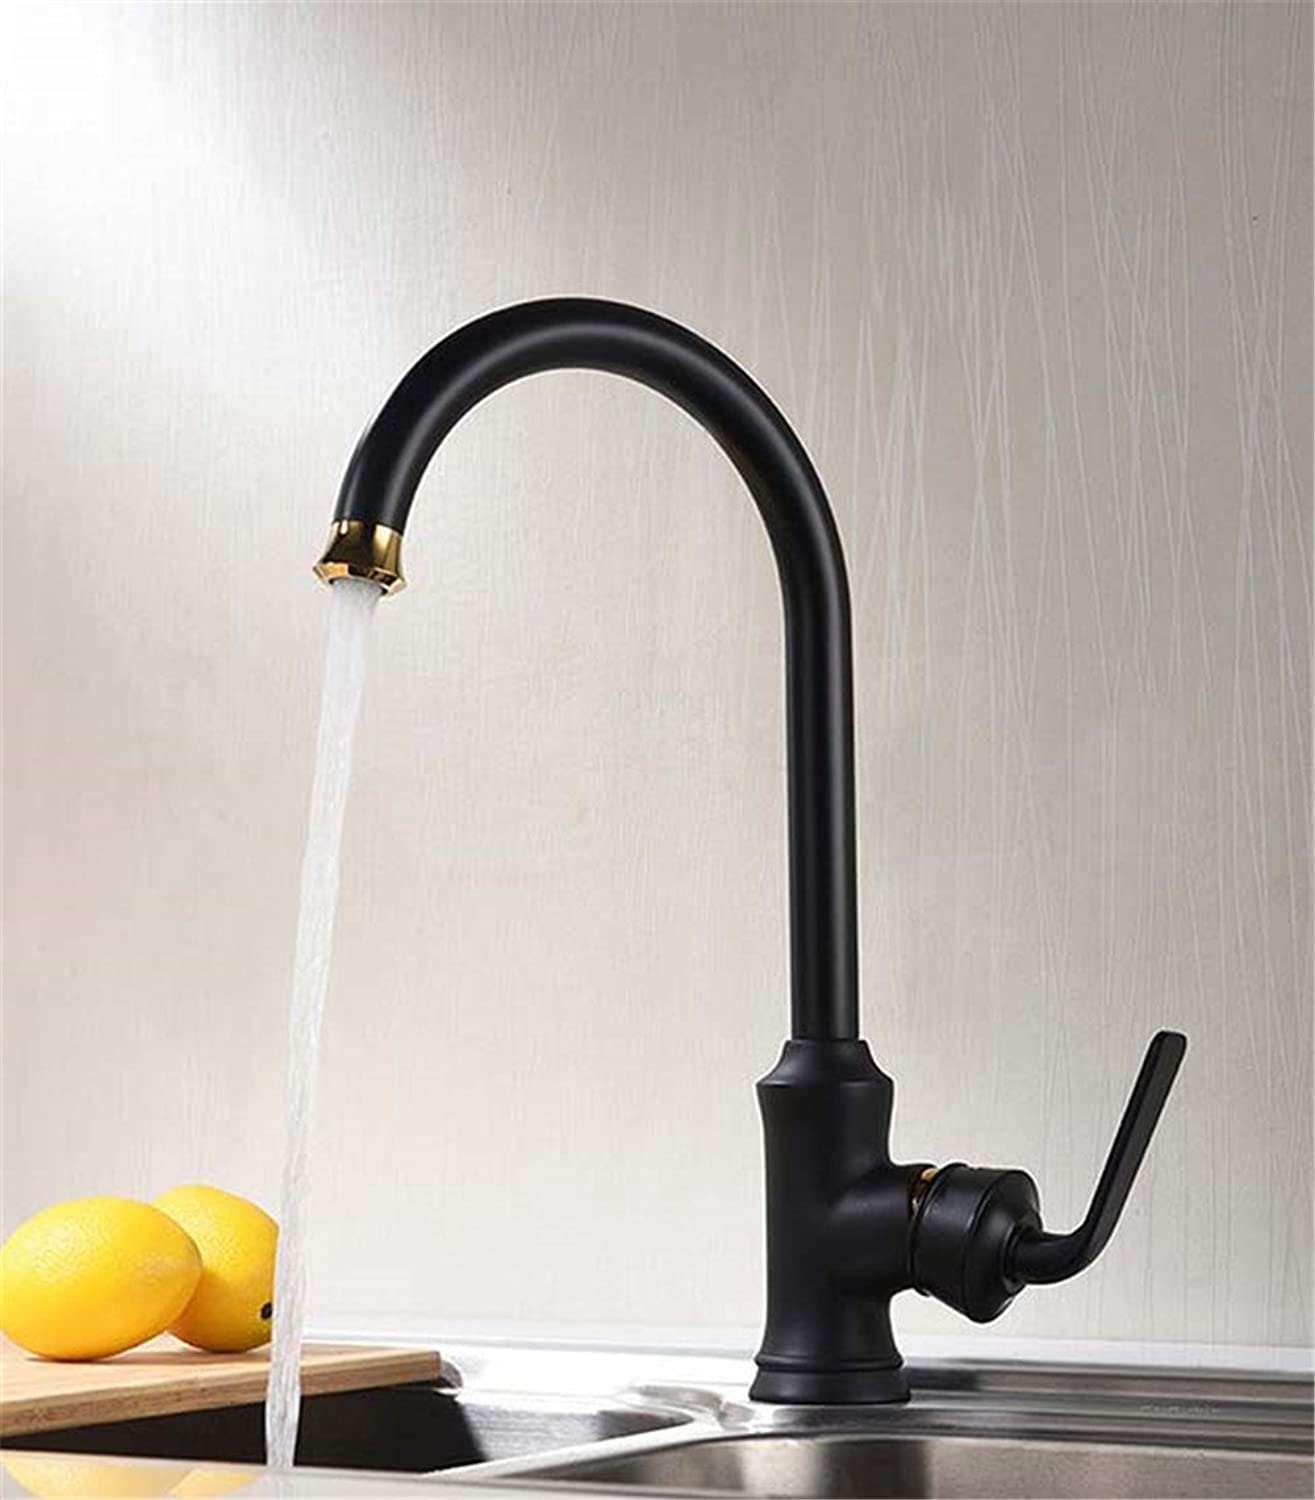 MIAORUI Hotel kitchen faucet tap high-end copper single hole basin cold and hot water tap